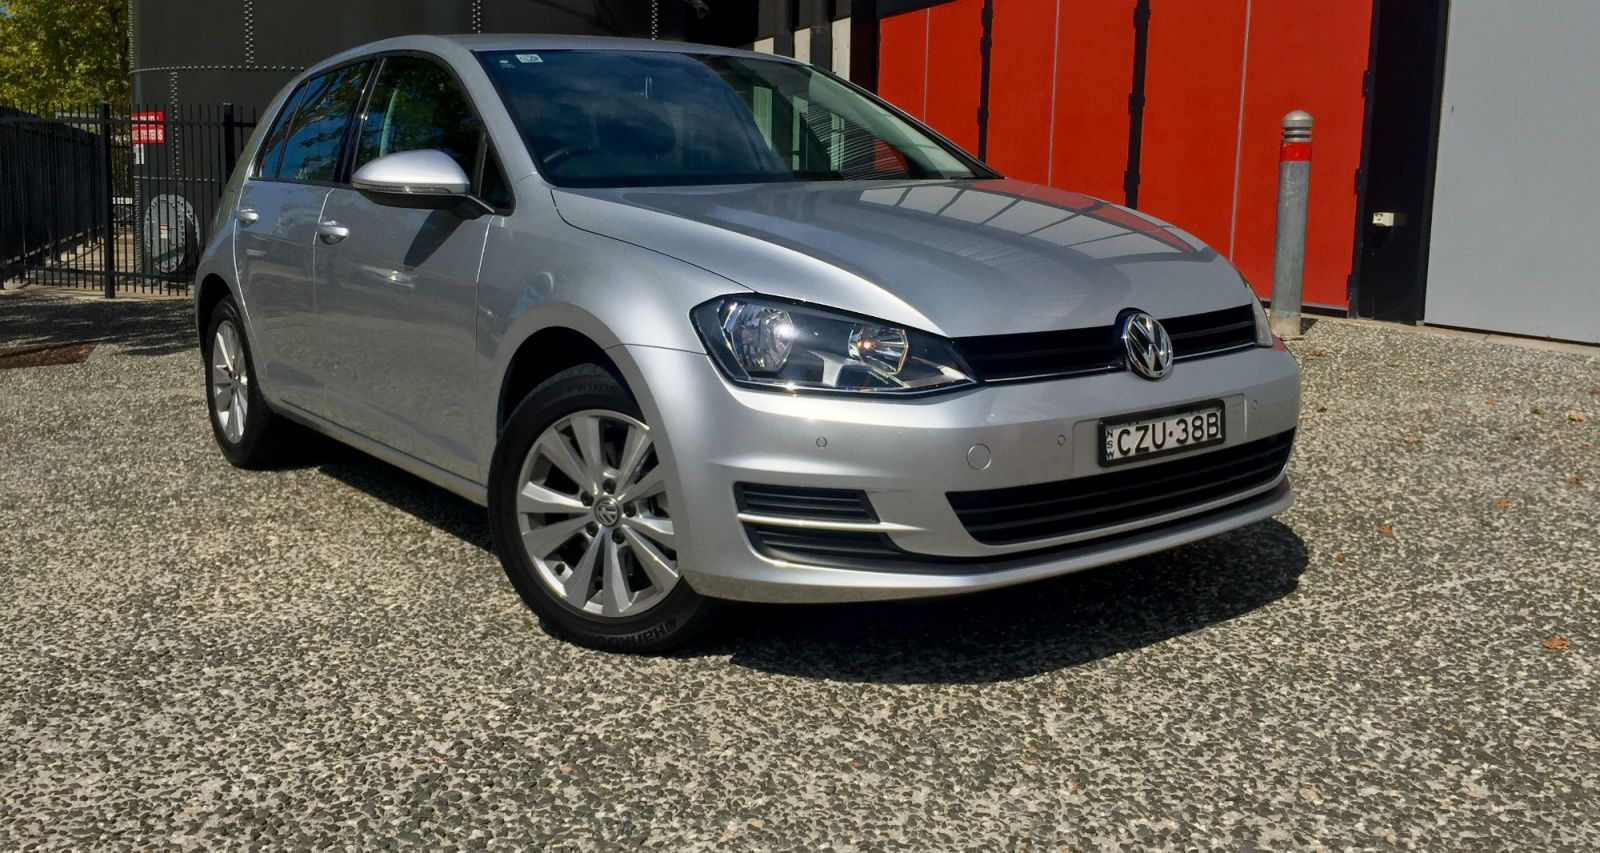 Volkswagen Golf | Tiguan | Polo Recalled For Child Lock Issues